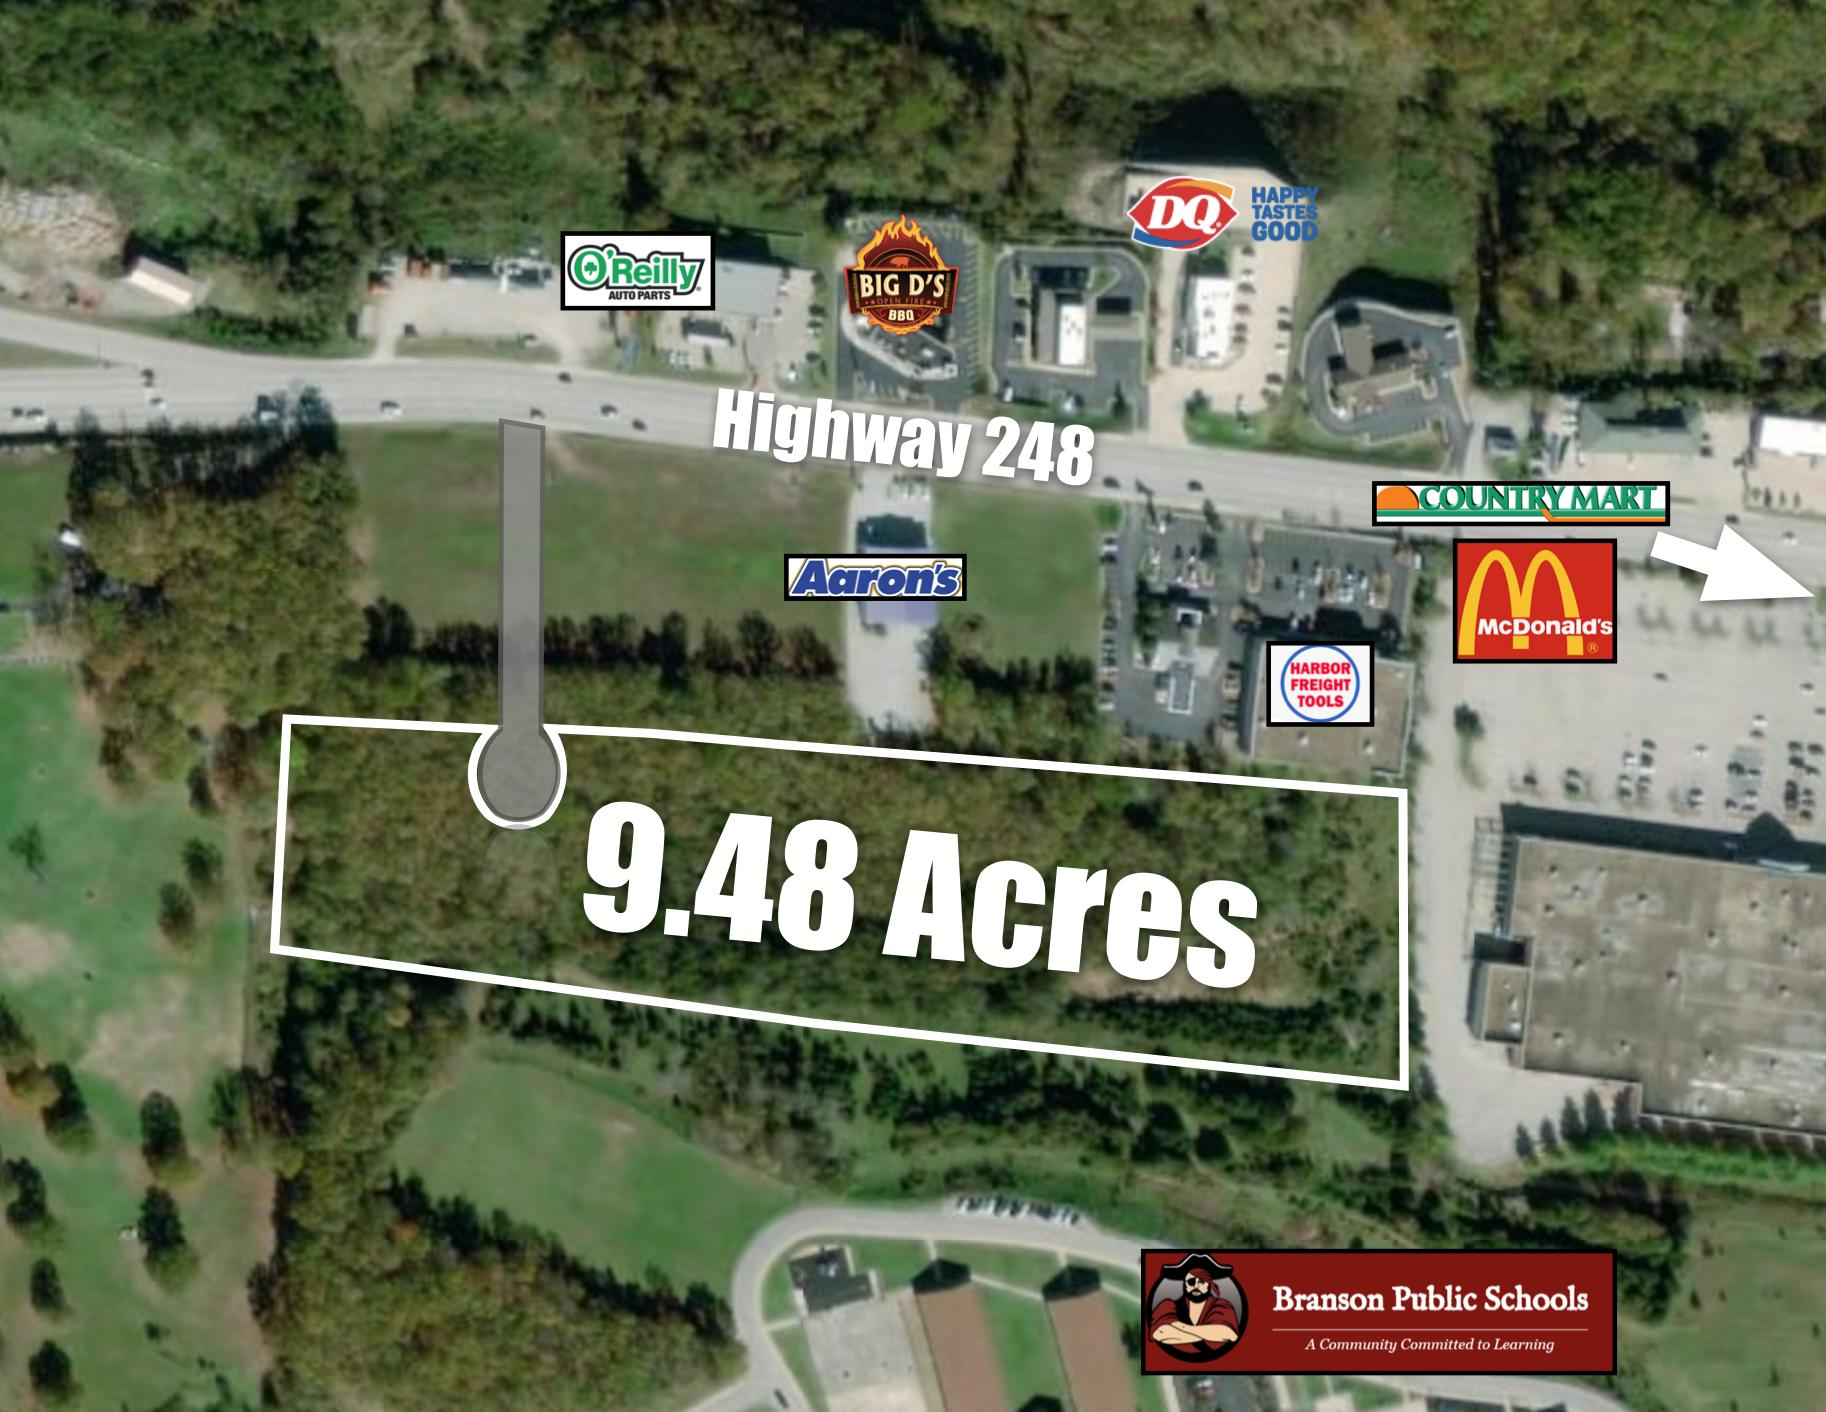 Lot 5 State Hwy 248, Branson, MO 65616 - Branson, MO real estate listing